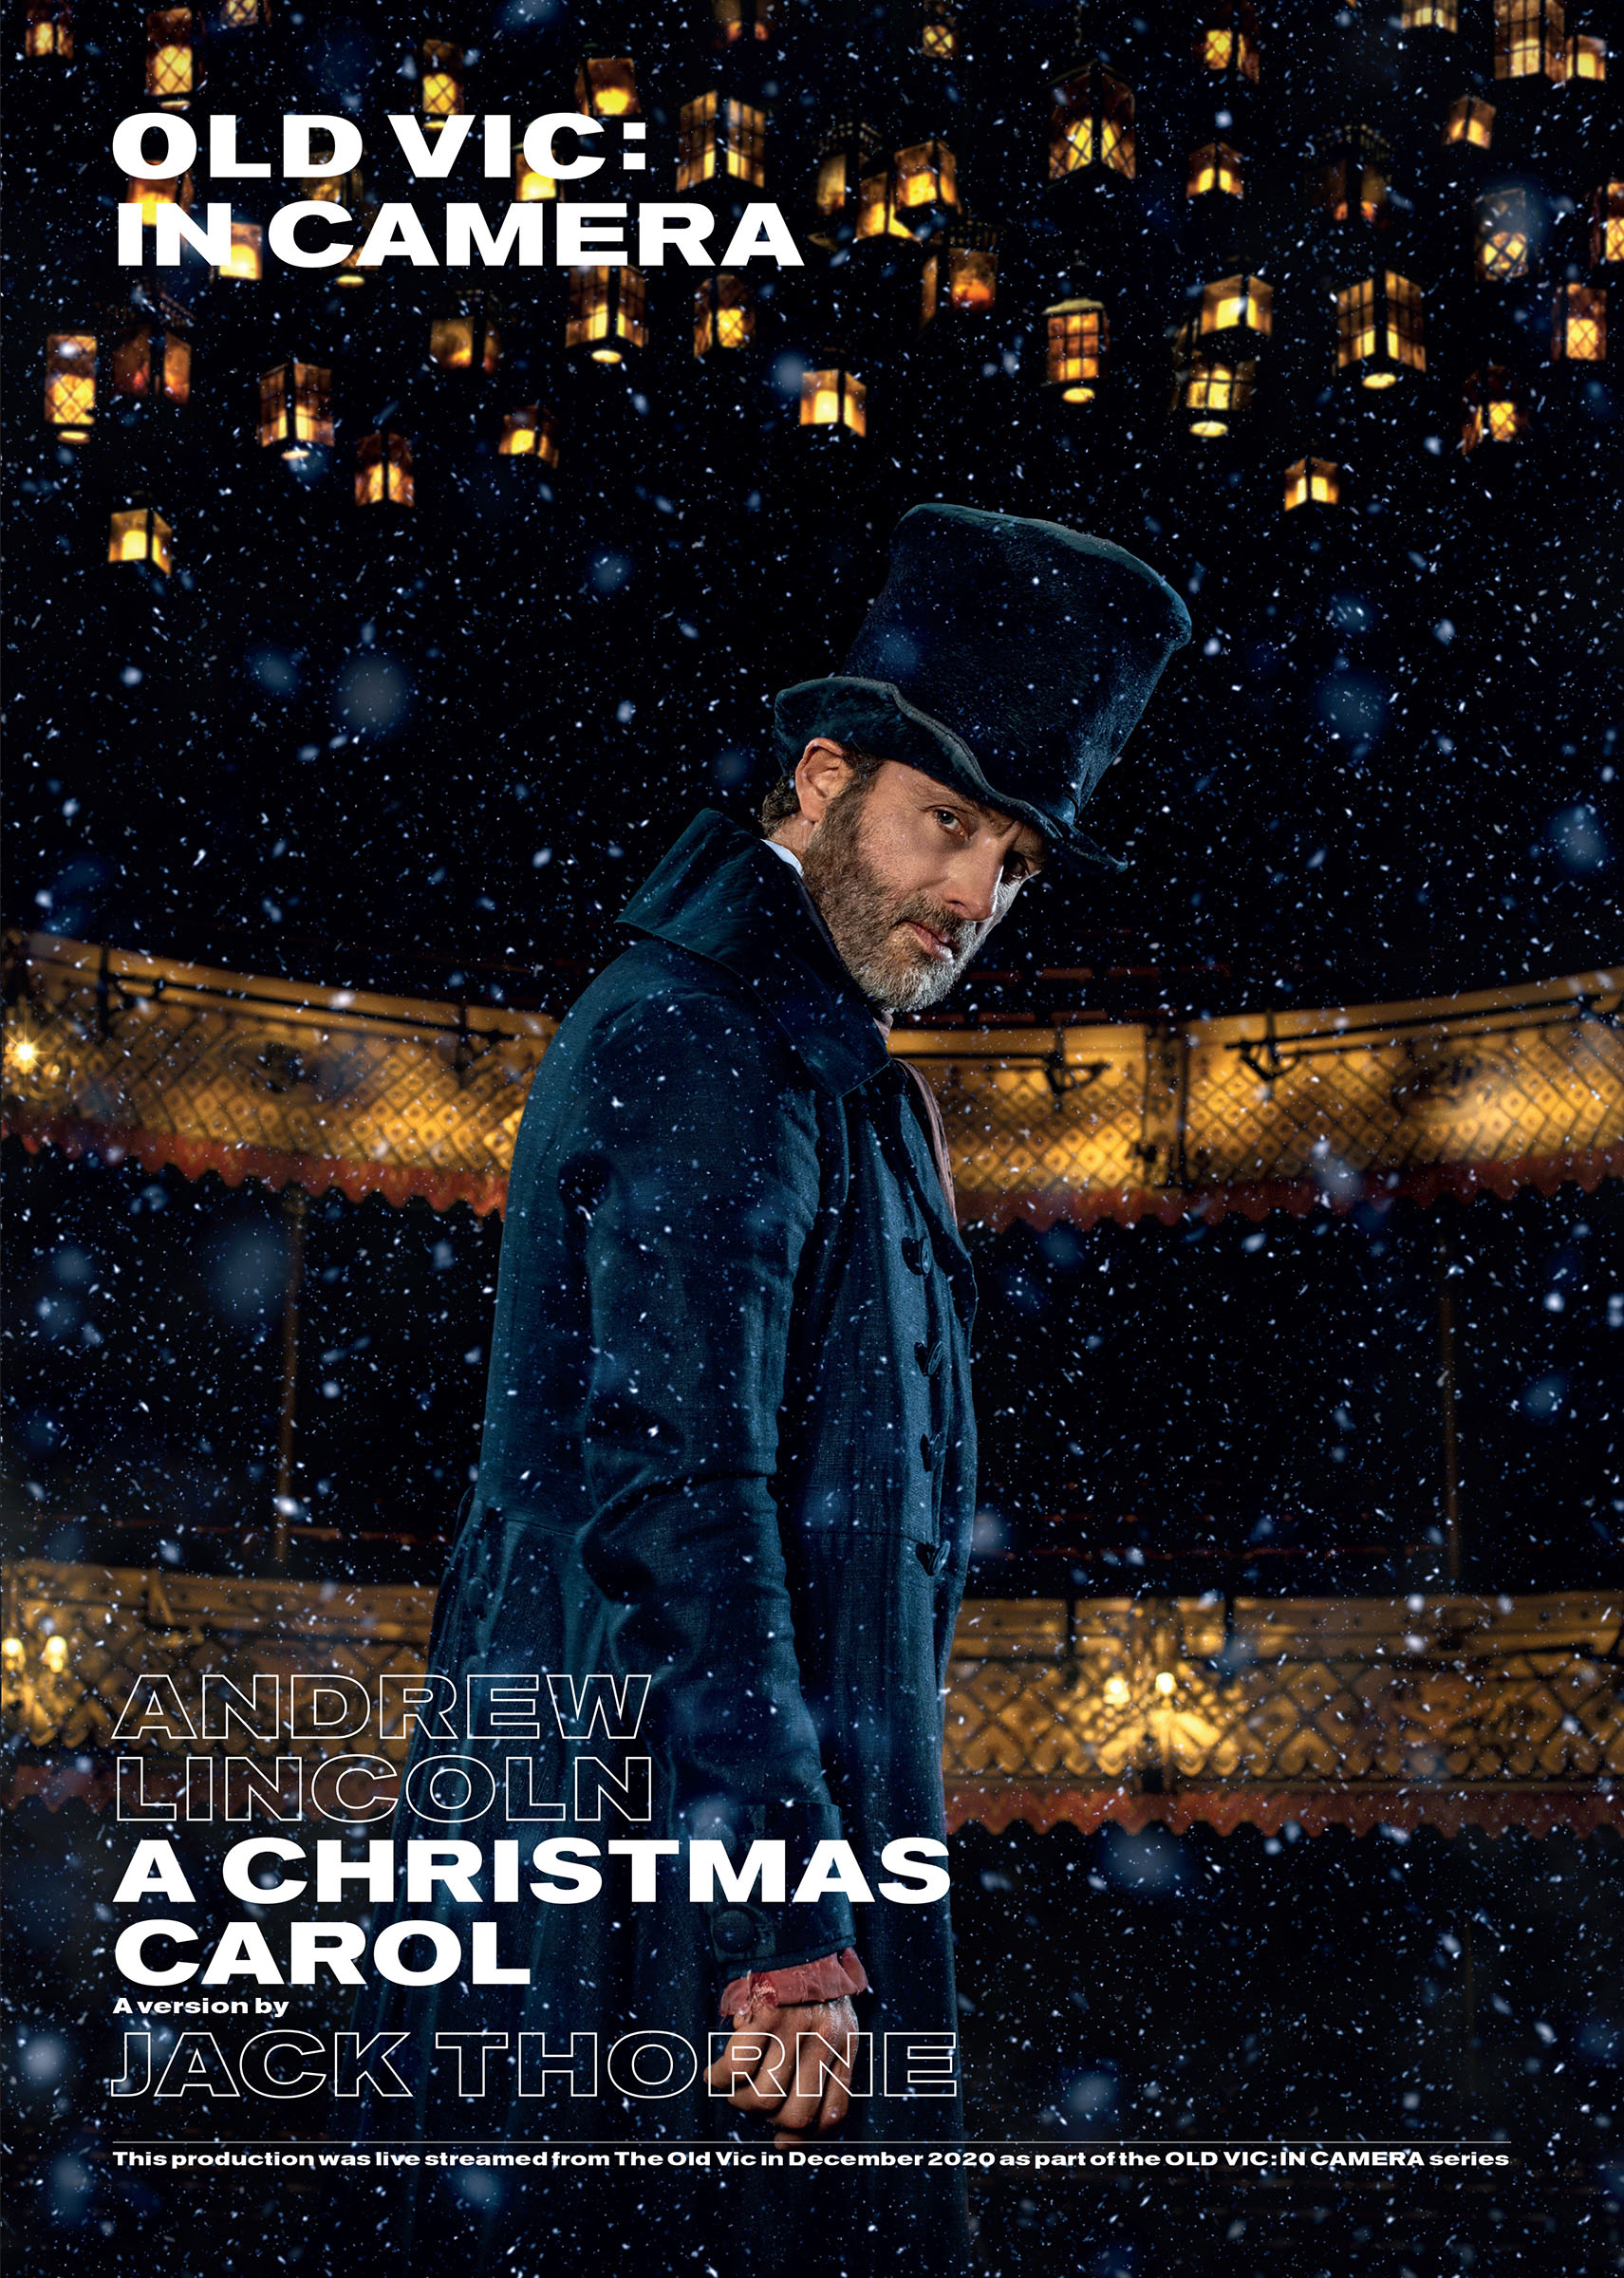 Poster for 'A Christmas Carol' at the Old Vic featuring Andrew Lincoln